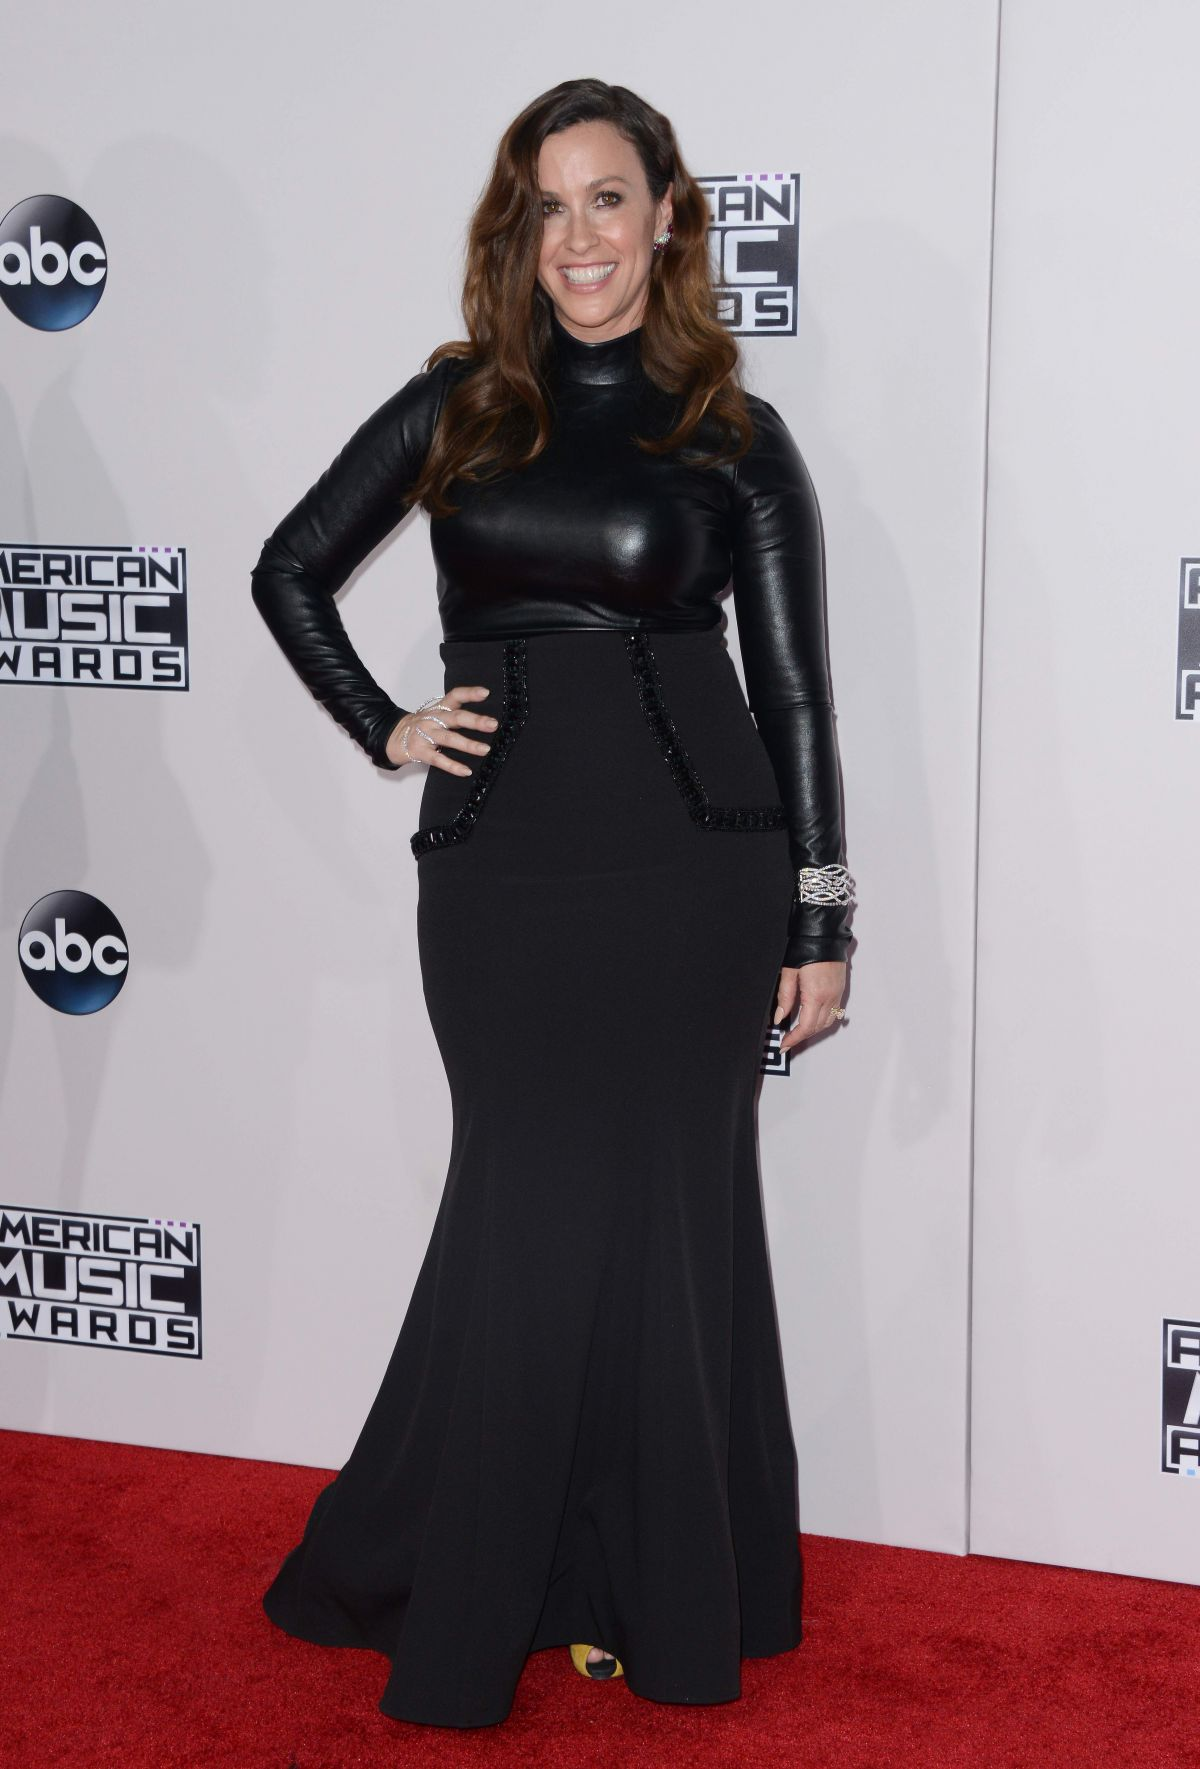 ALANIS MORISSETTE at 2015 American Music Awards in Los Angeles 11/22/2015